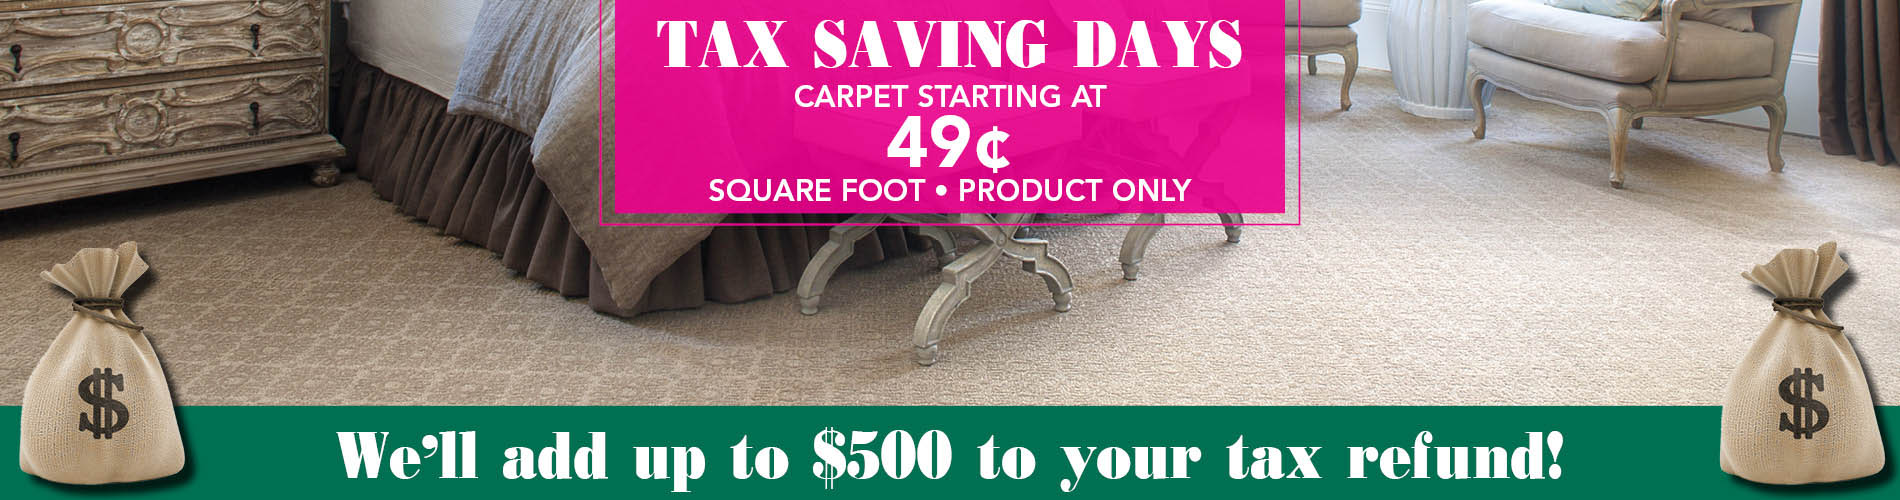 Carpet starting at $0.49 sq.ft. - Product Only